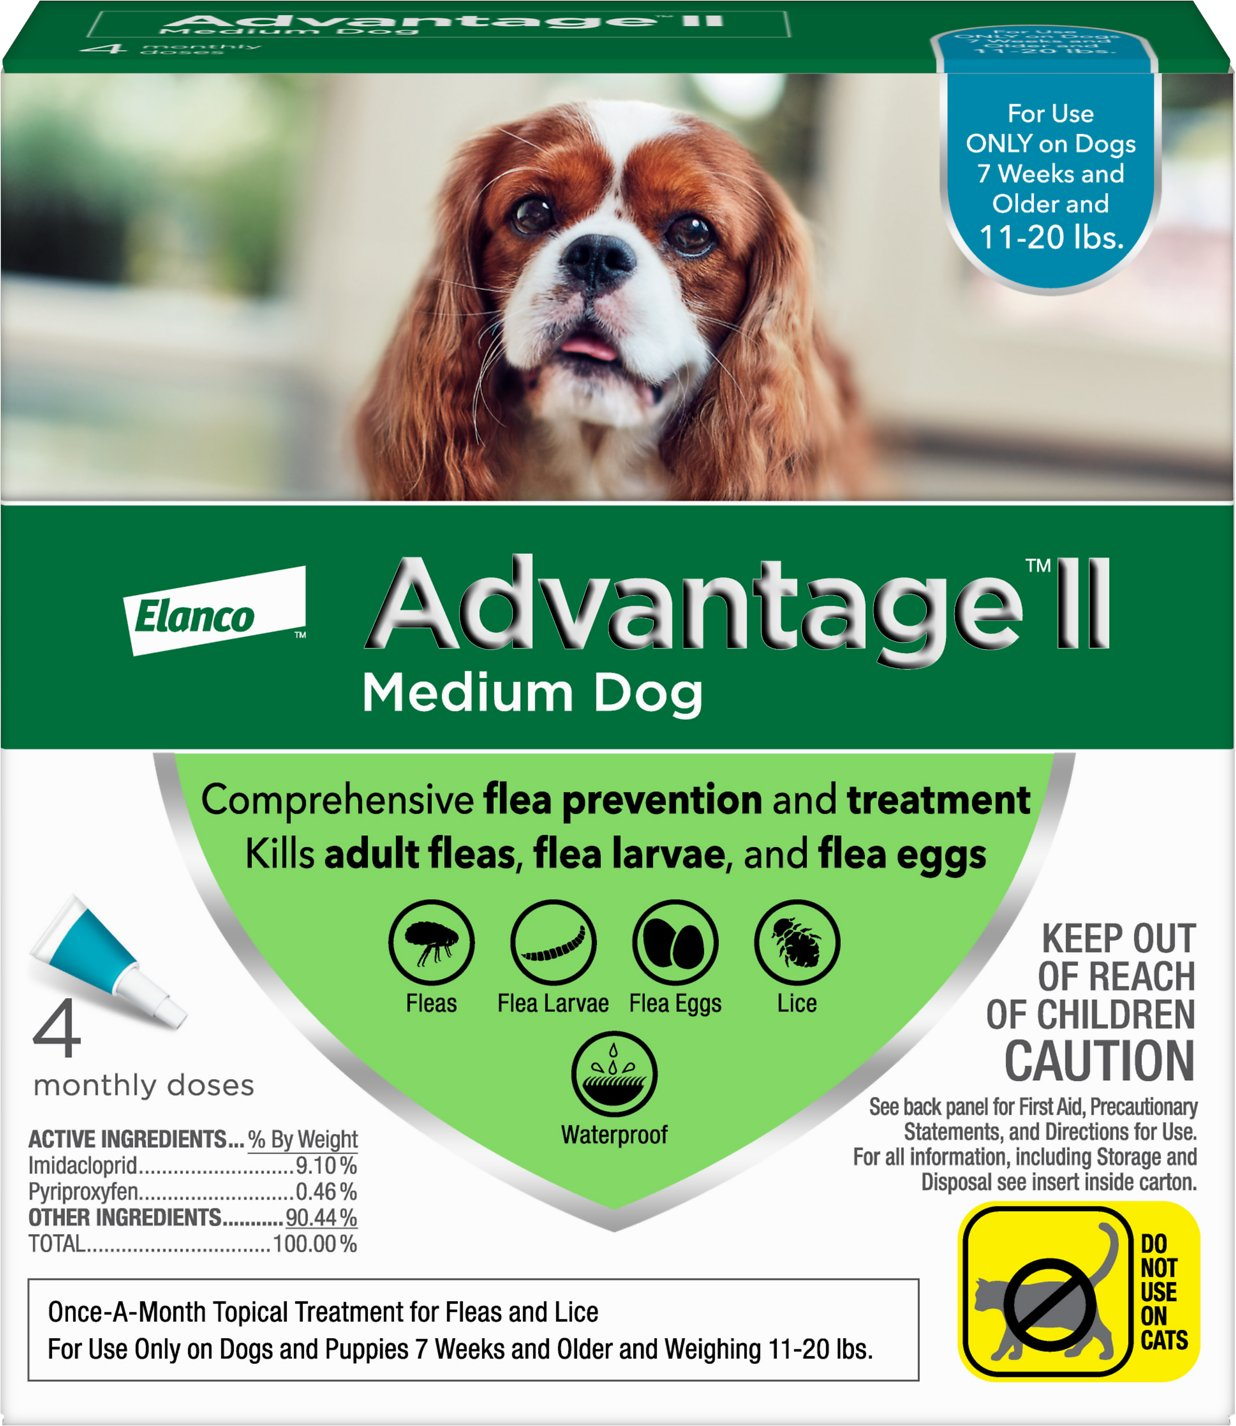 Advantage Ii Flea Tick Spot Treatment For Dogs 11 20 Lbs 4 Doses 4 Mos Supply Chewy Com